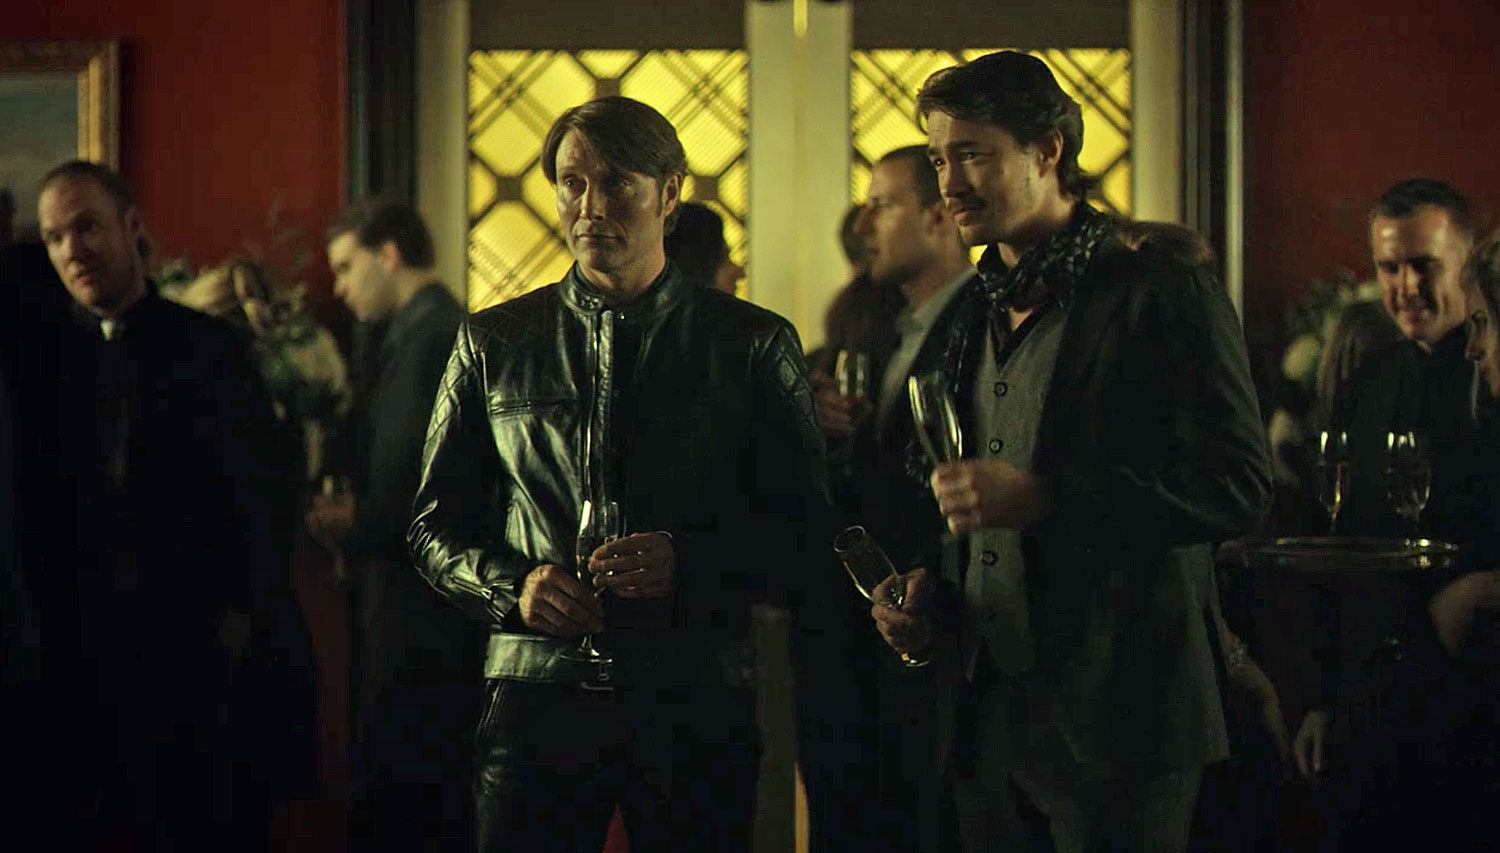 Bikers Jacket mads at a party in Hannibal